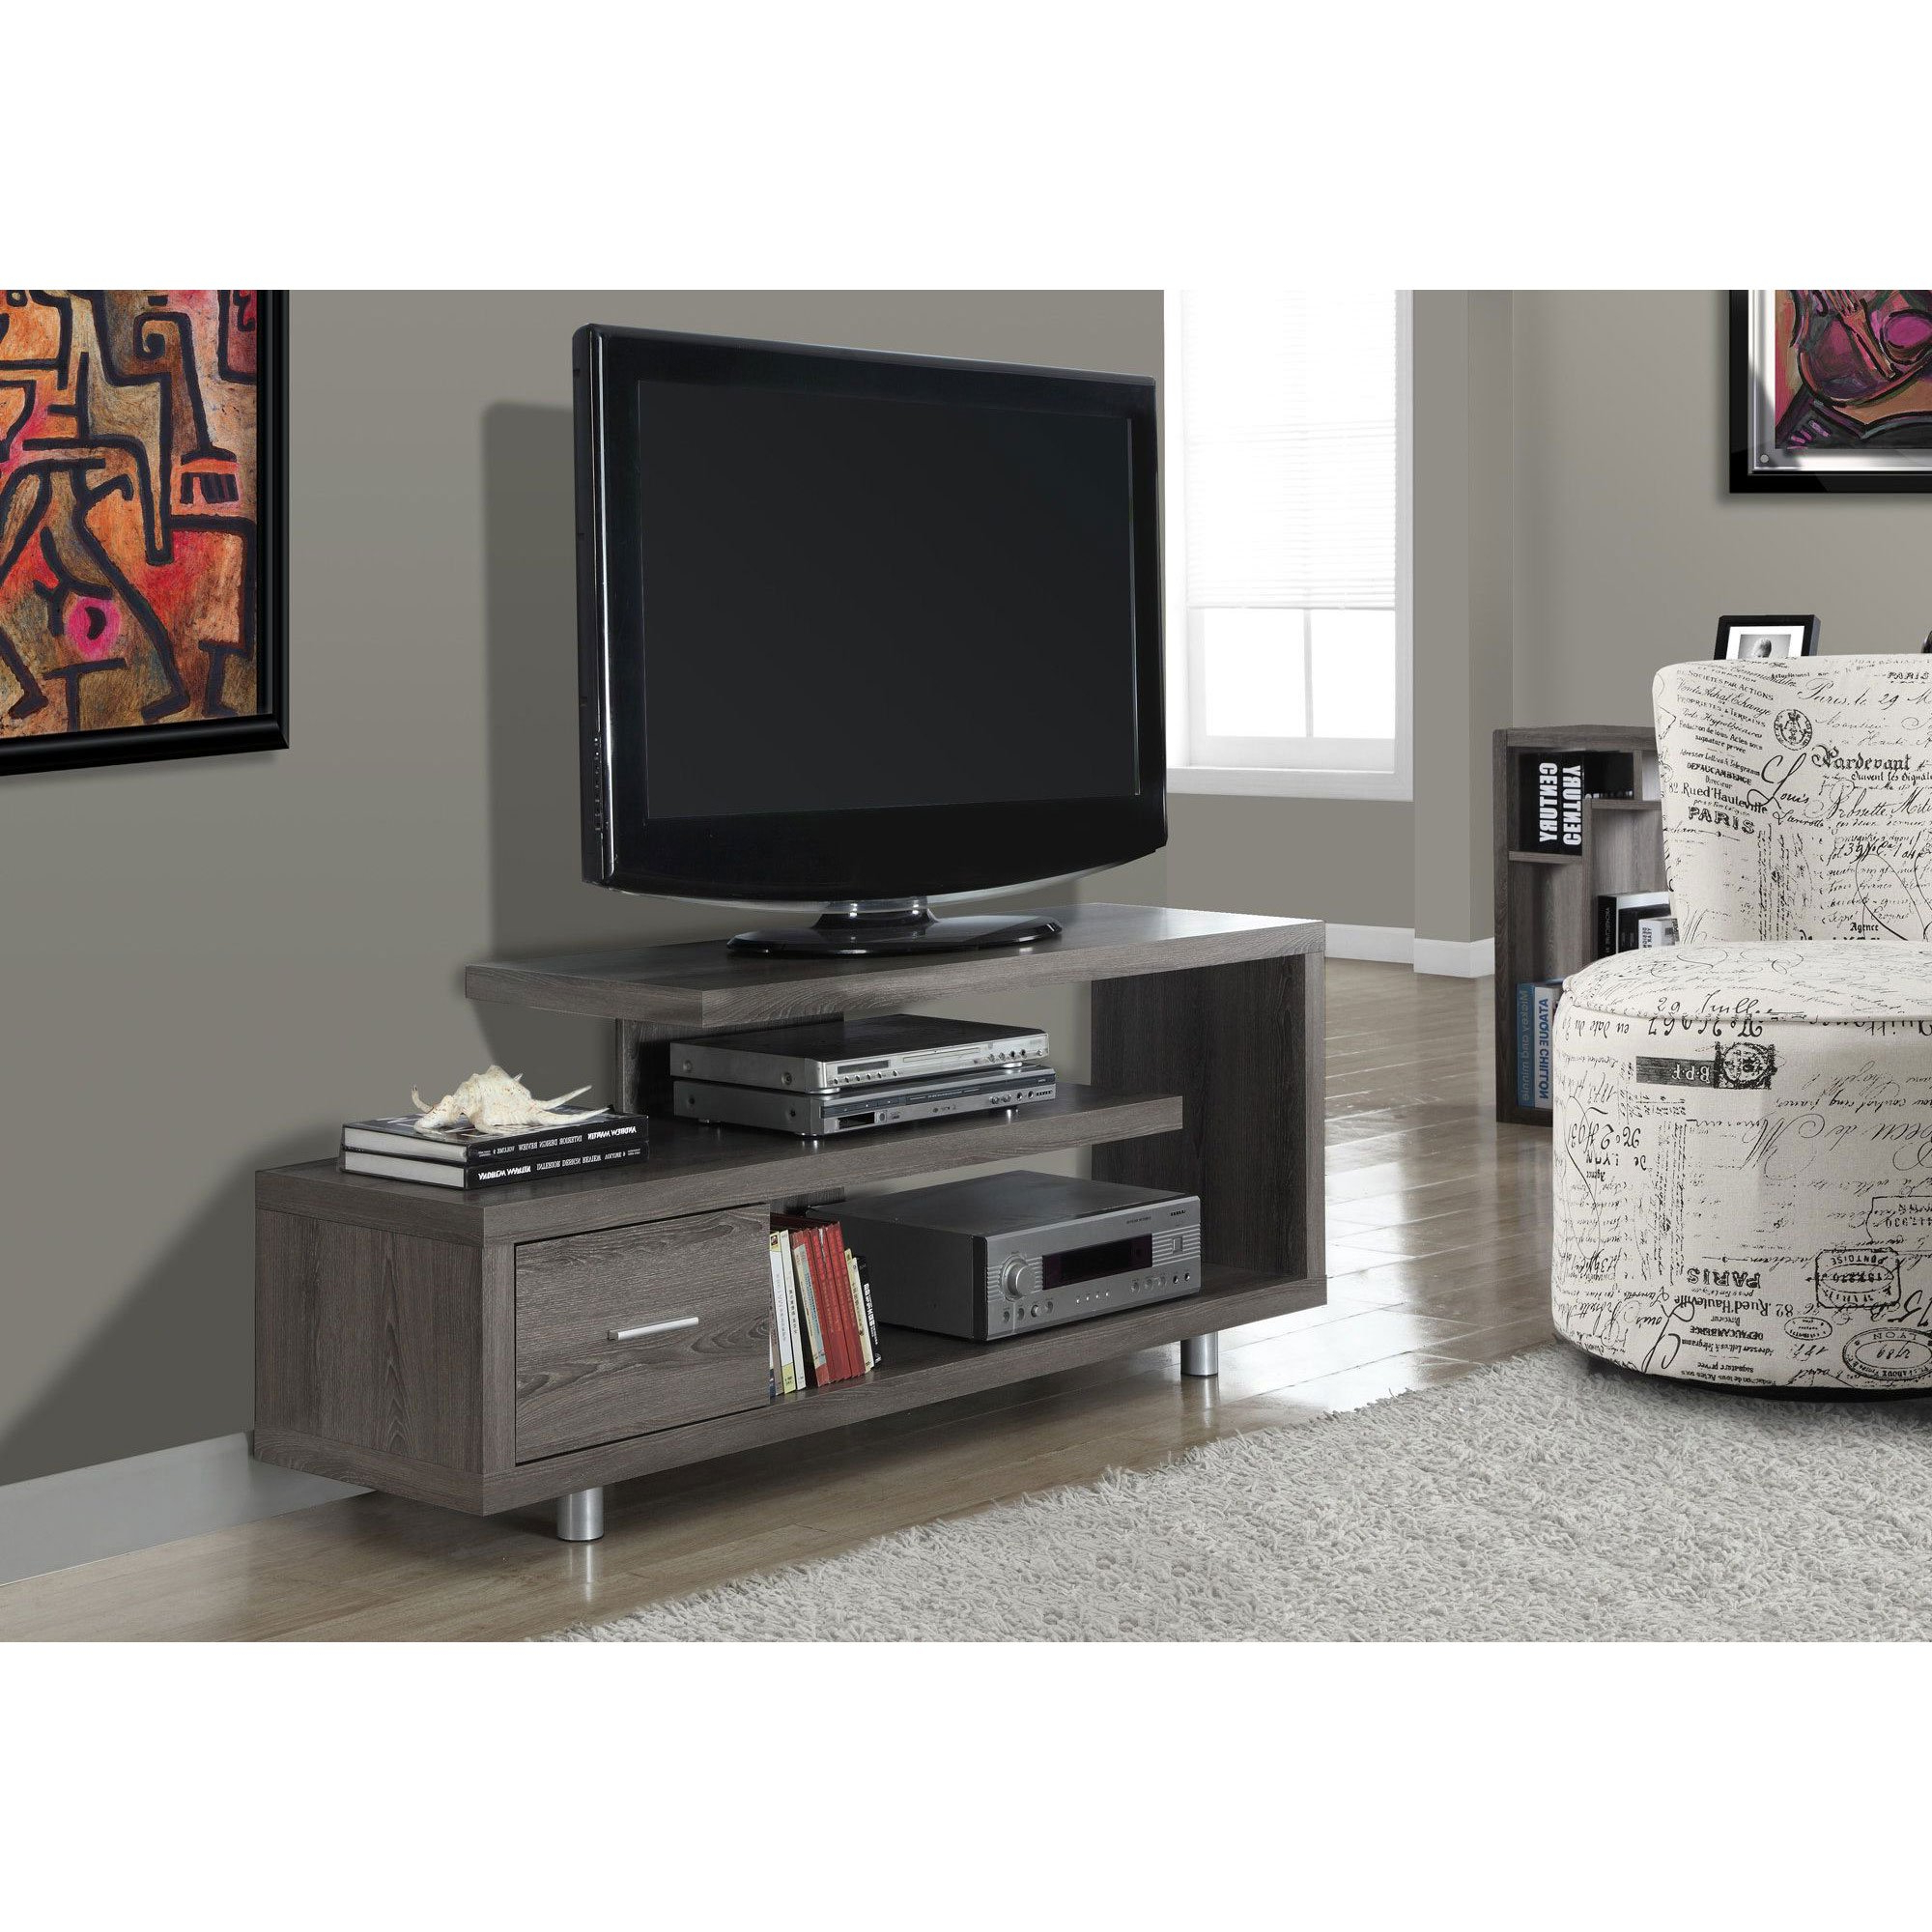 "Monarch Tv Stand White With 1 Drawer For Tvs Up To 47""l – Walmart For Maddy 60 Inch Tv Stands (View 8 of 20)"